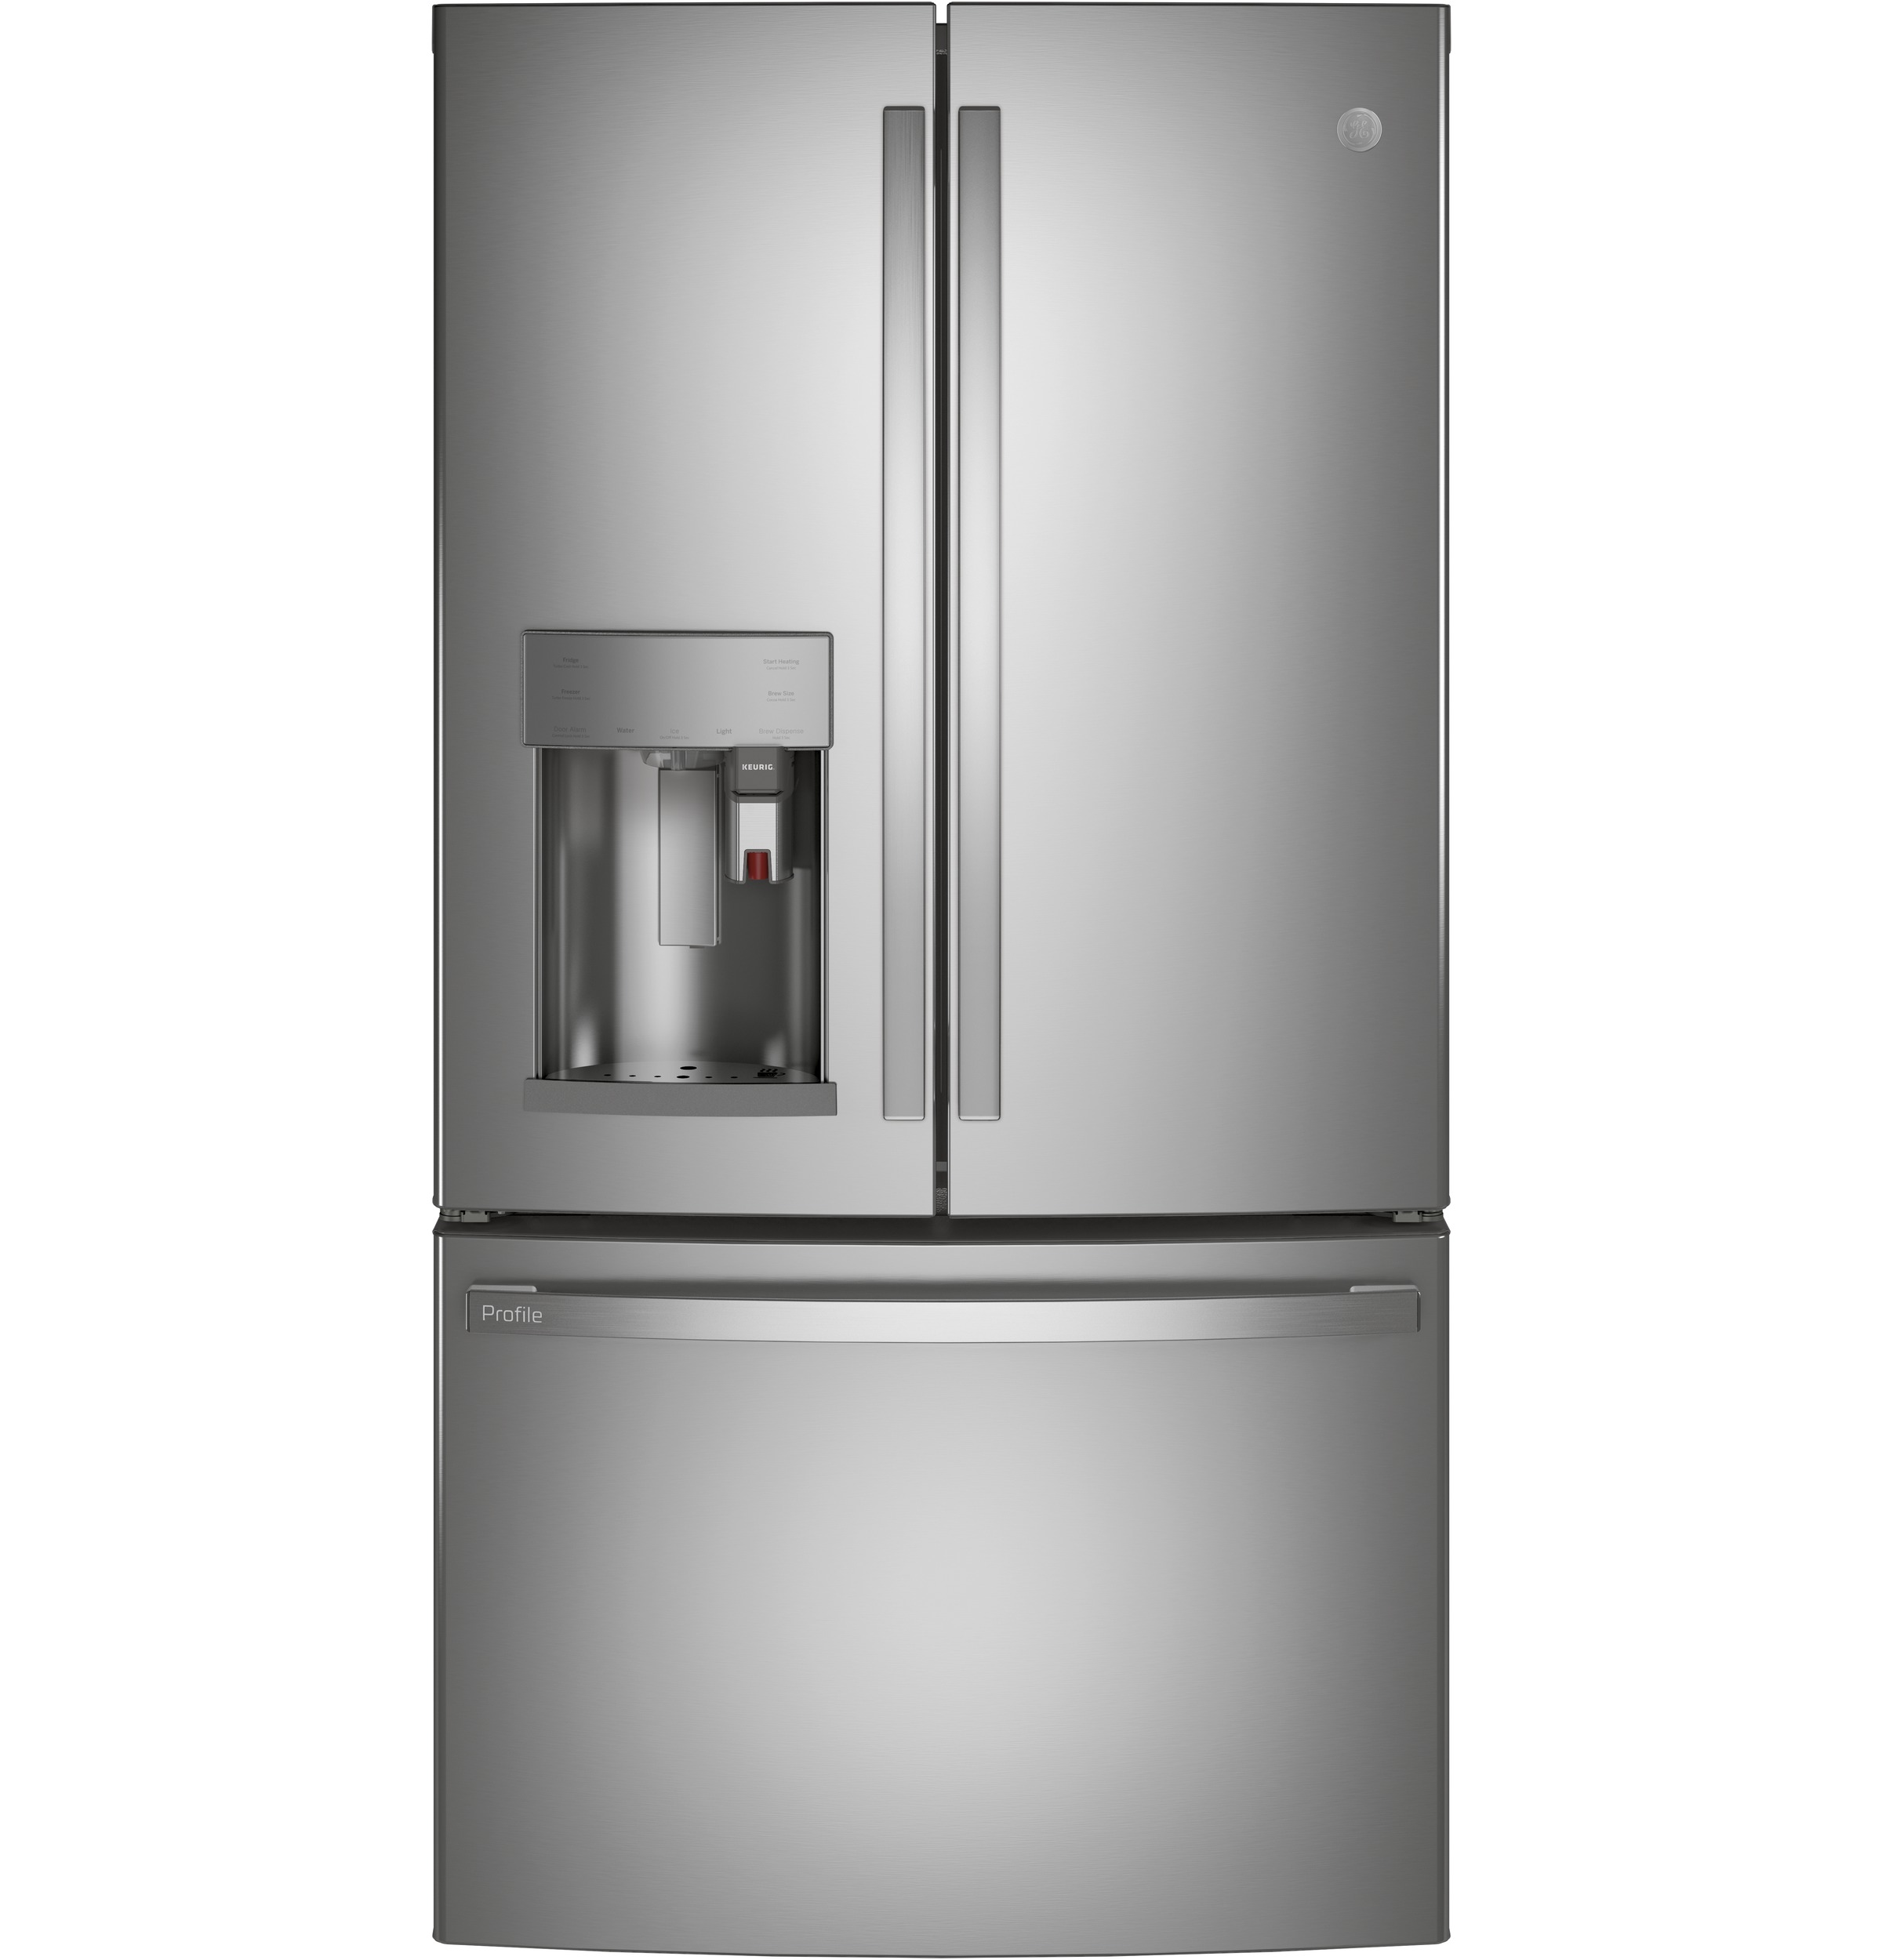 GE Profile GE Profile™ Series ENERGY STAR® 27.7 Cu. Ft. Smart French-Door Refrigerator with Keurig® K-Cup® Brewing System